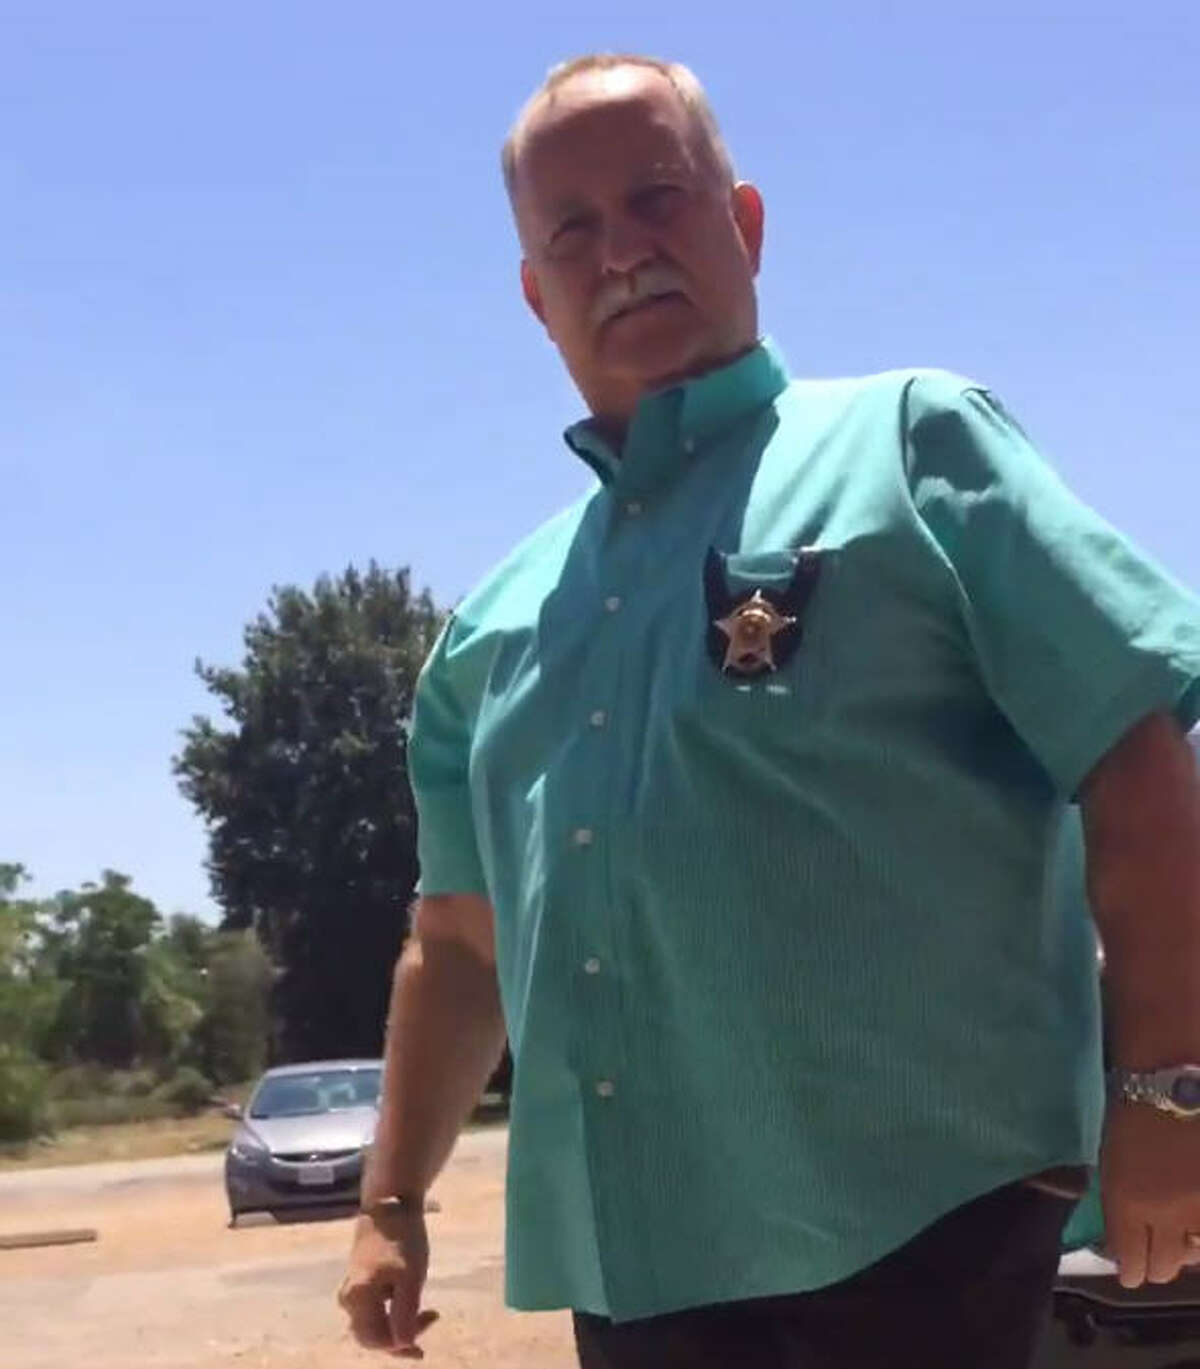 Houston clergy member Hannah Adair Bonner tweeted a video of Waller County Sheriff Glenn Smith suggesting she return to her